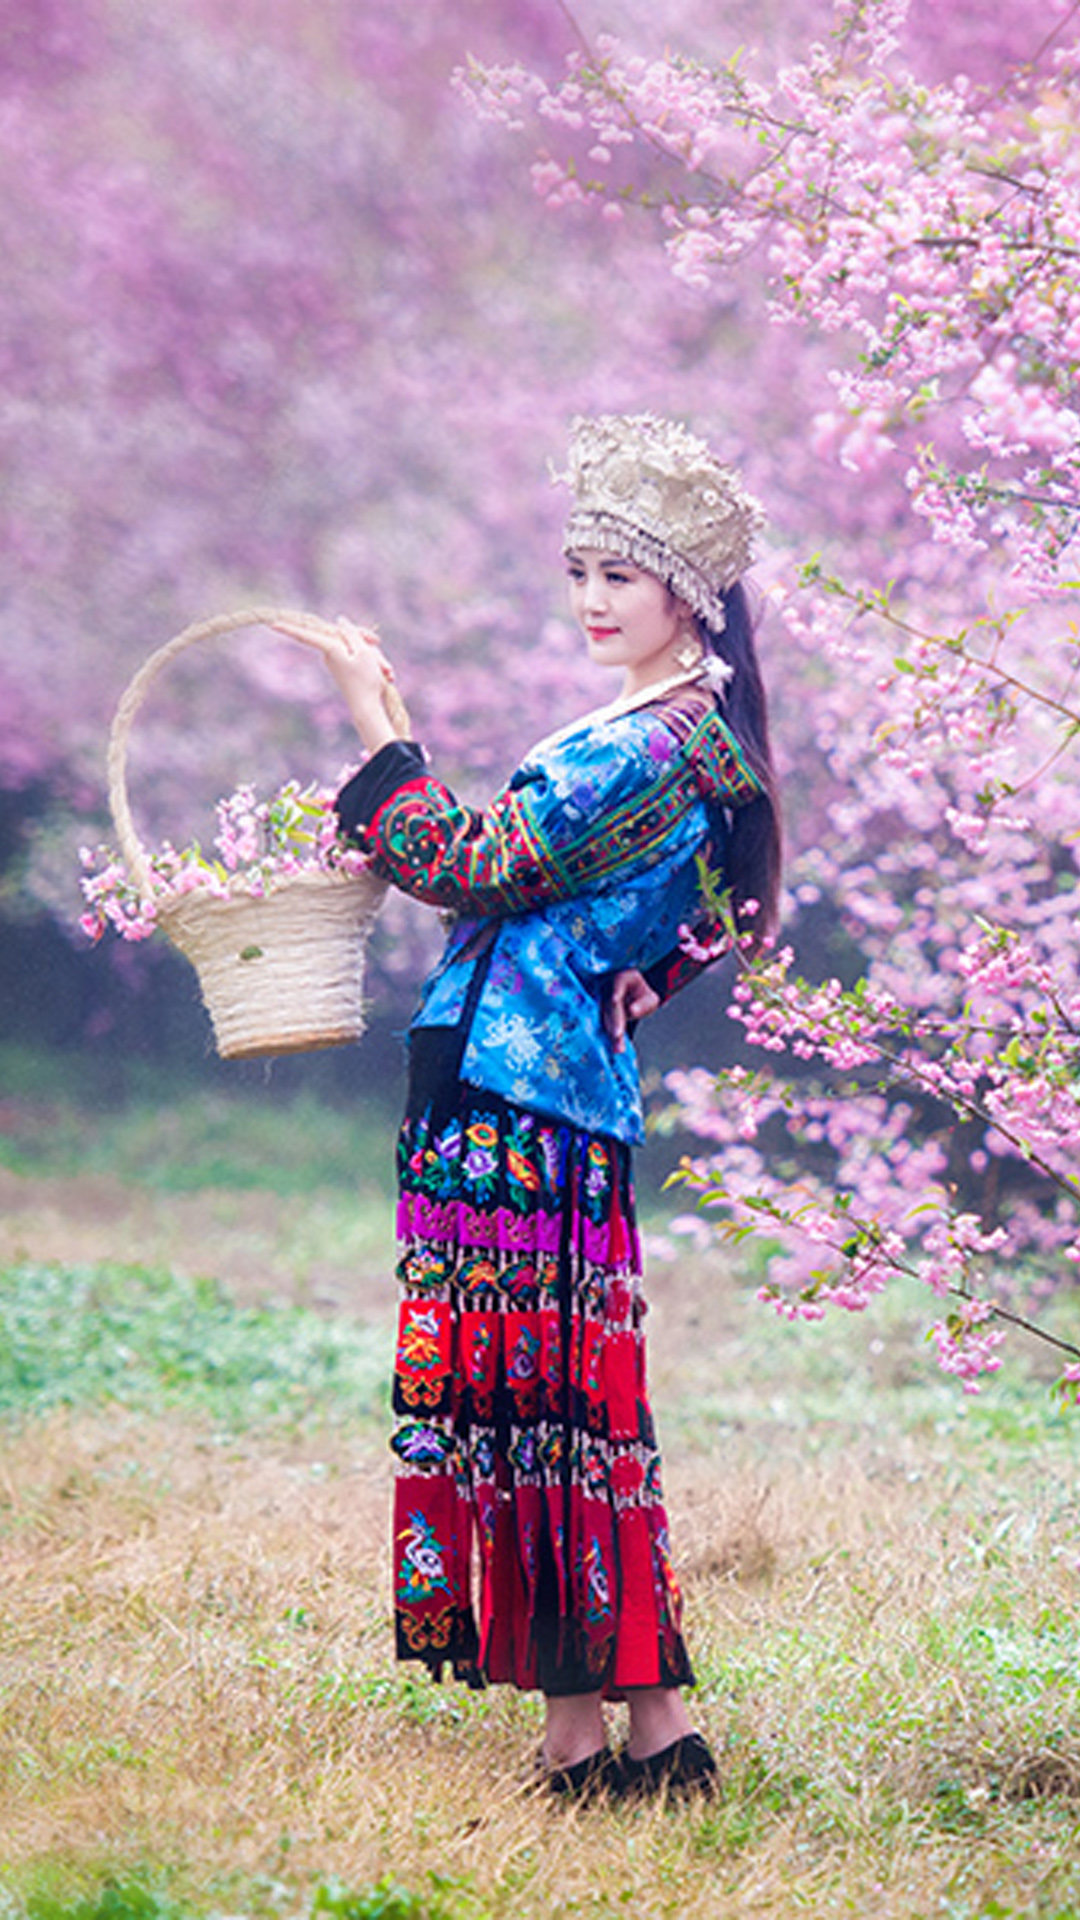 Chinese Ethnic Culture girl 1 Android wallpaper